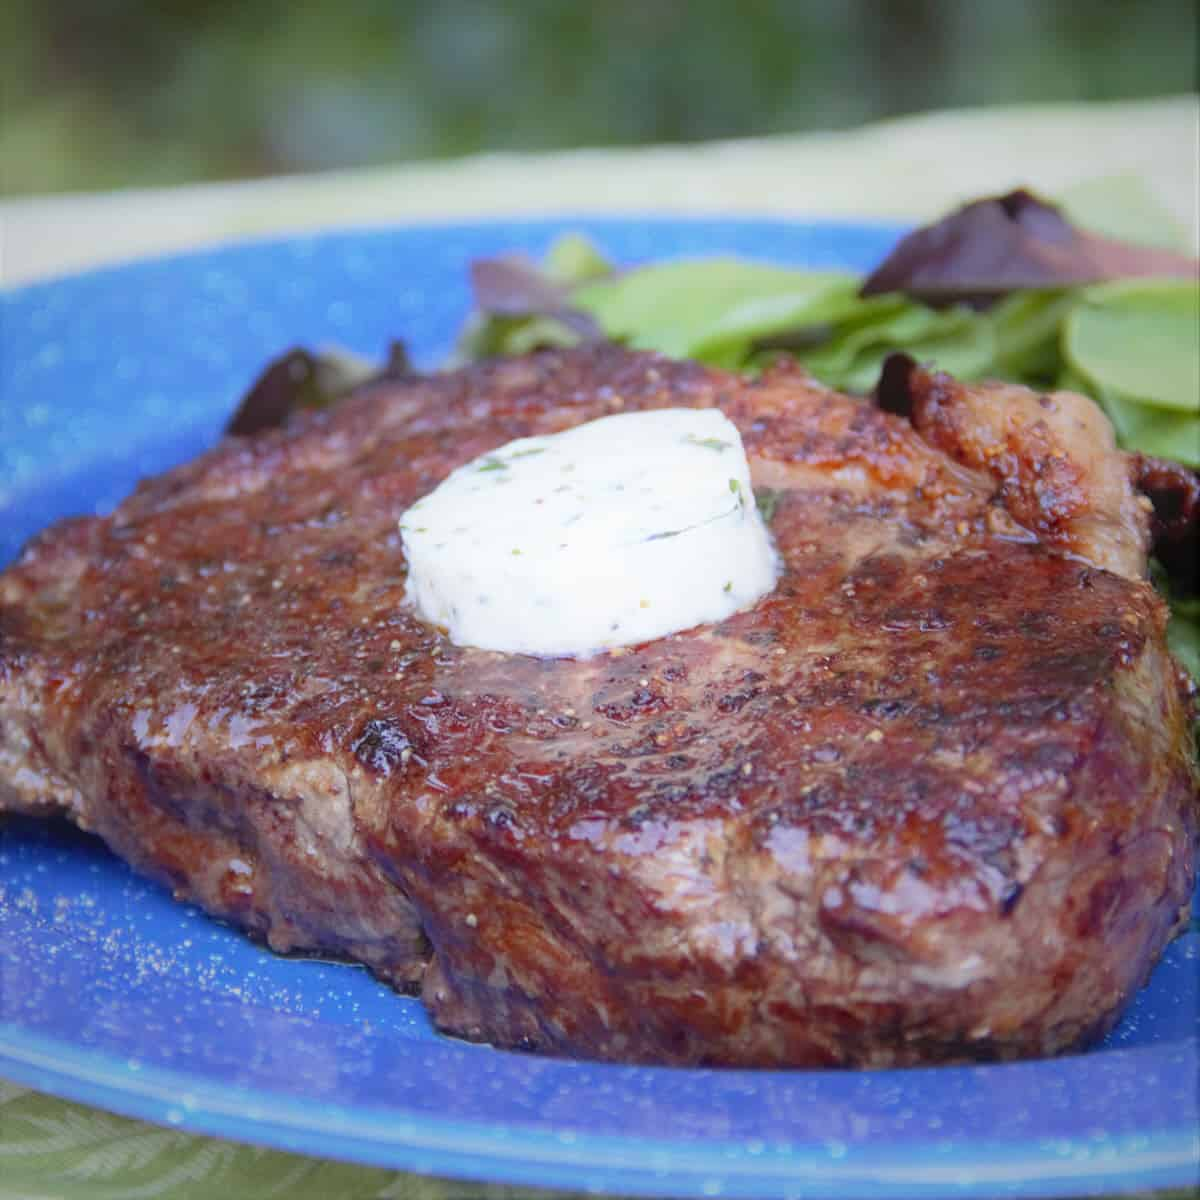 Three pepper steak is served with a slice of the compound butter